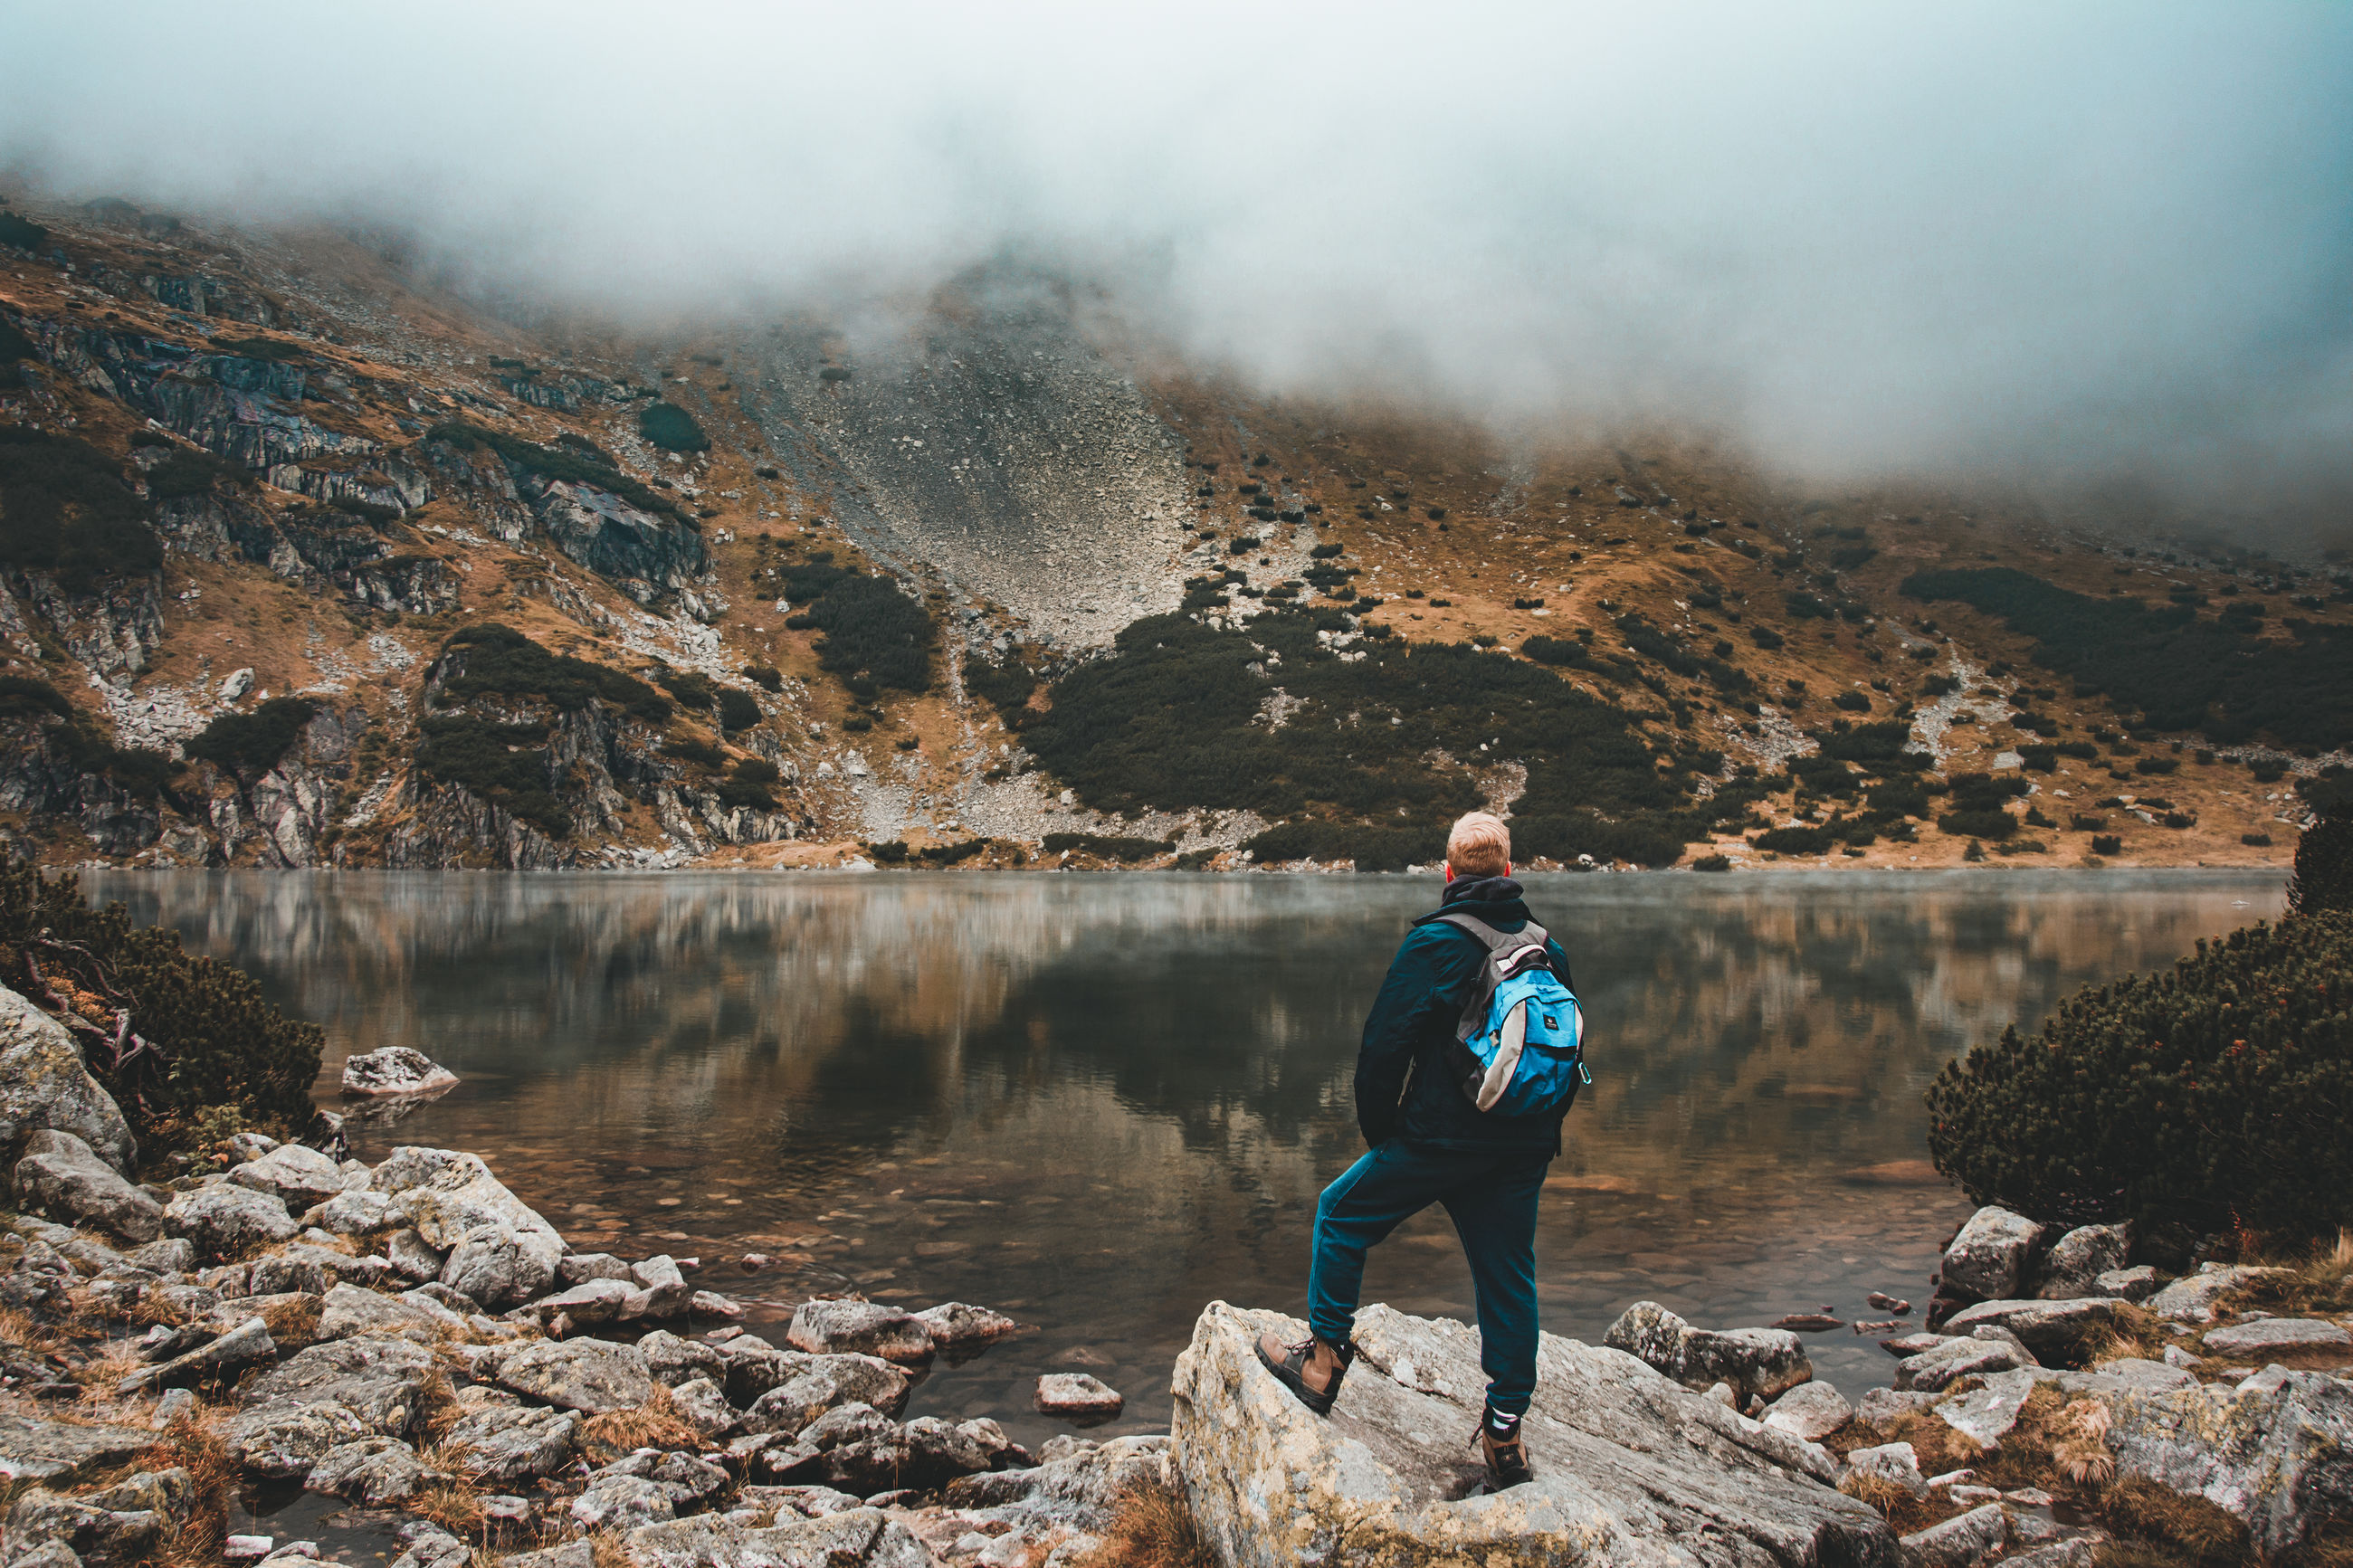 water, full length, rock, one person, beauty in nature, real people, rock - object, scenics - nature, solid, non-urban scene, lifestyles, mountain, leisure activity, standing, nature, tranquility, lake, casual clothing, tranquil scene, outdoors